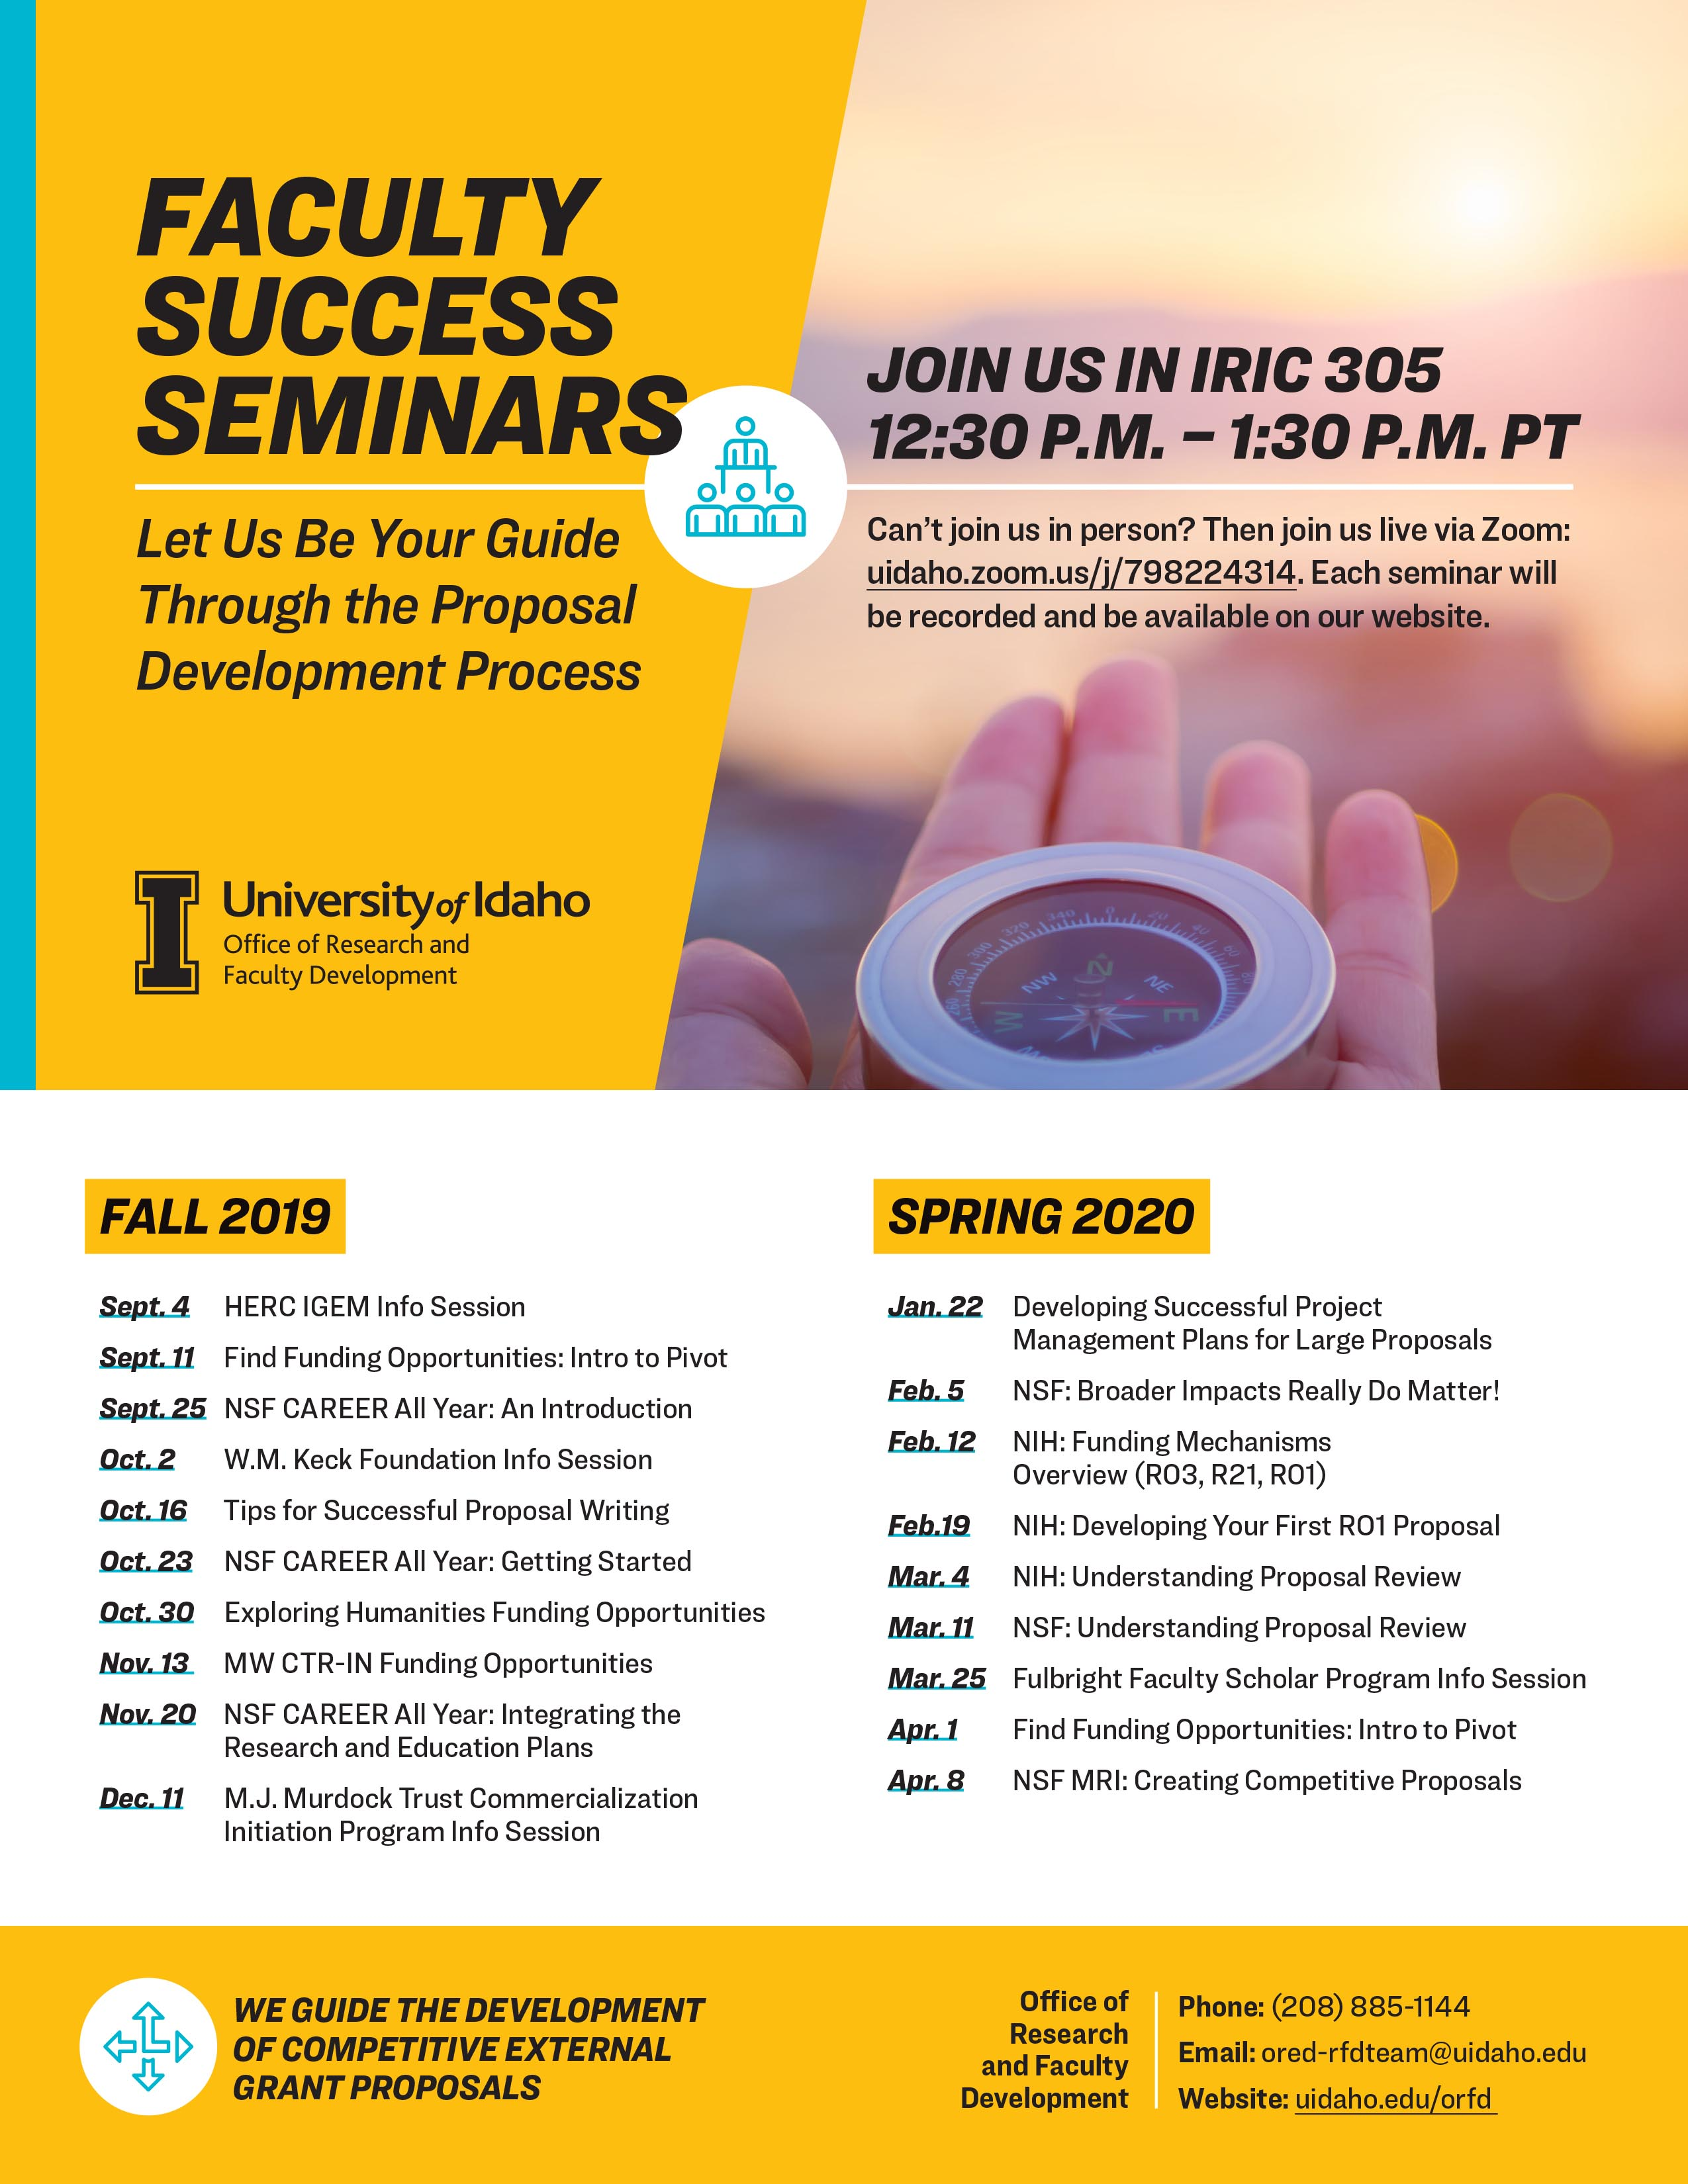 faculty success seminar flyer